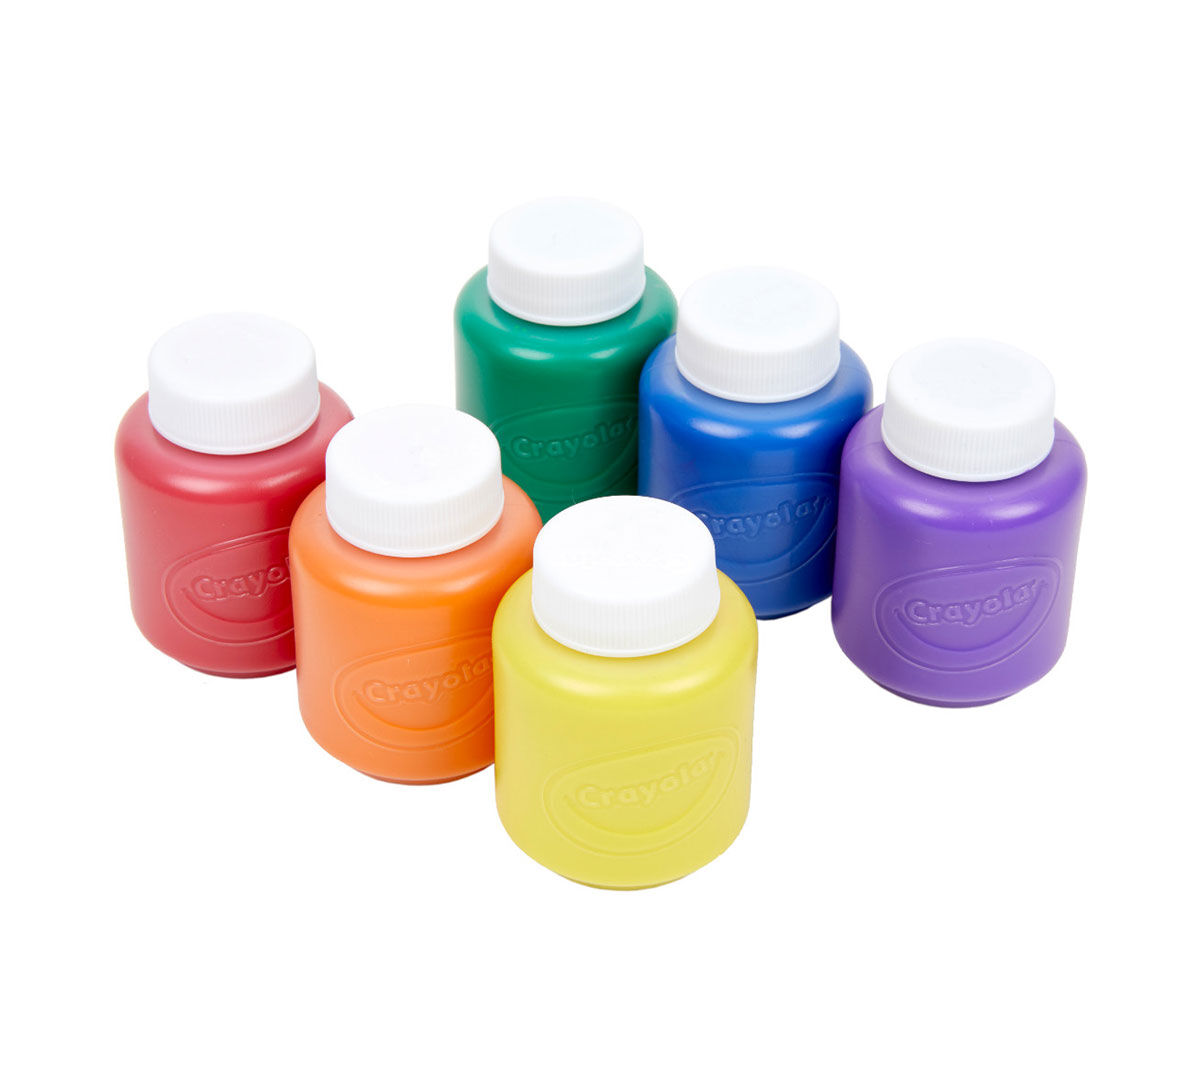 Crayola Washable Kids Paint 6 Count Classic Colors Painting Supplies Gift